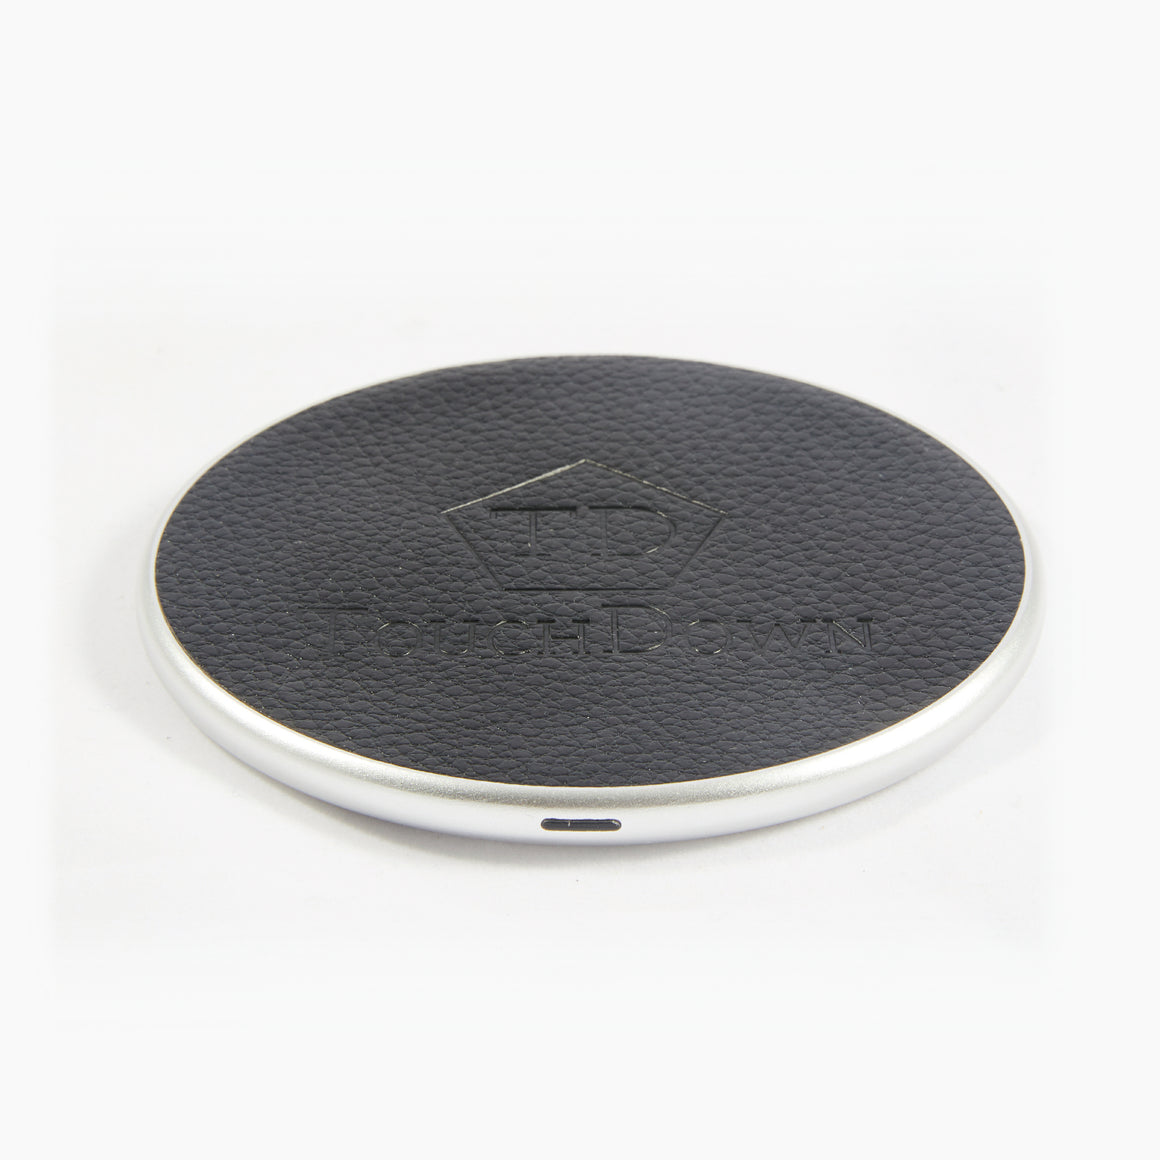 Circular Leather Charging Pad - Business Edition - Silver - TouchDown Charging